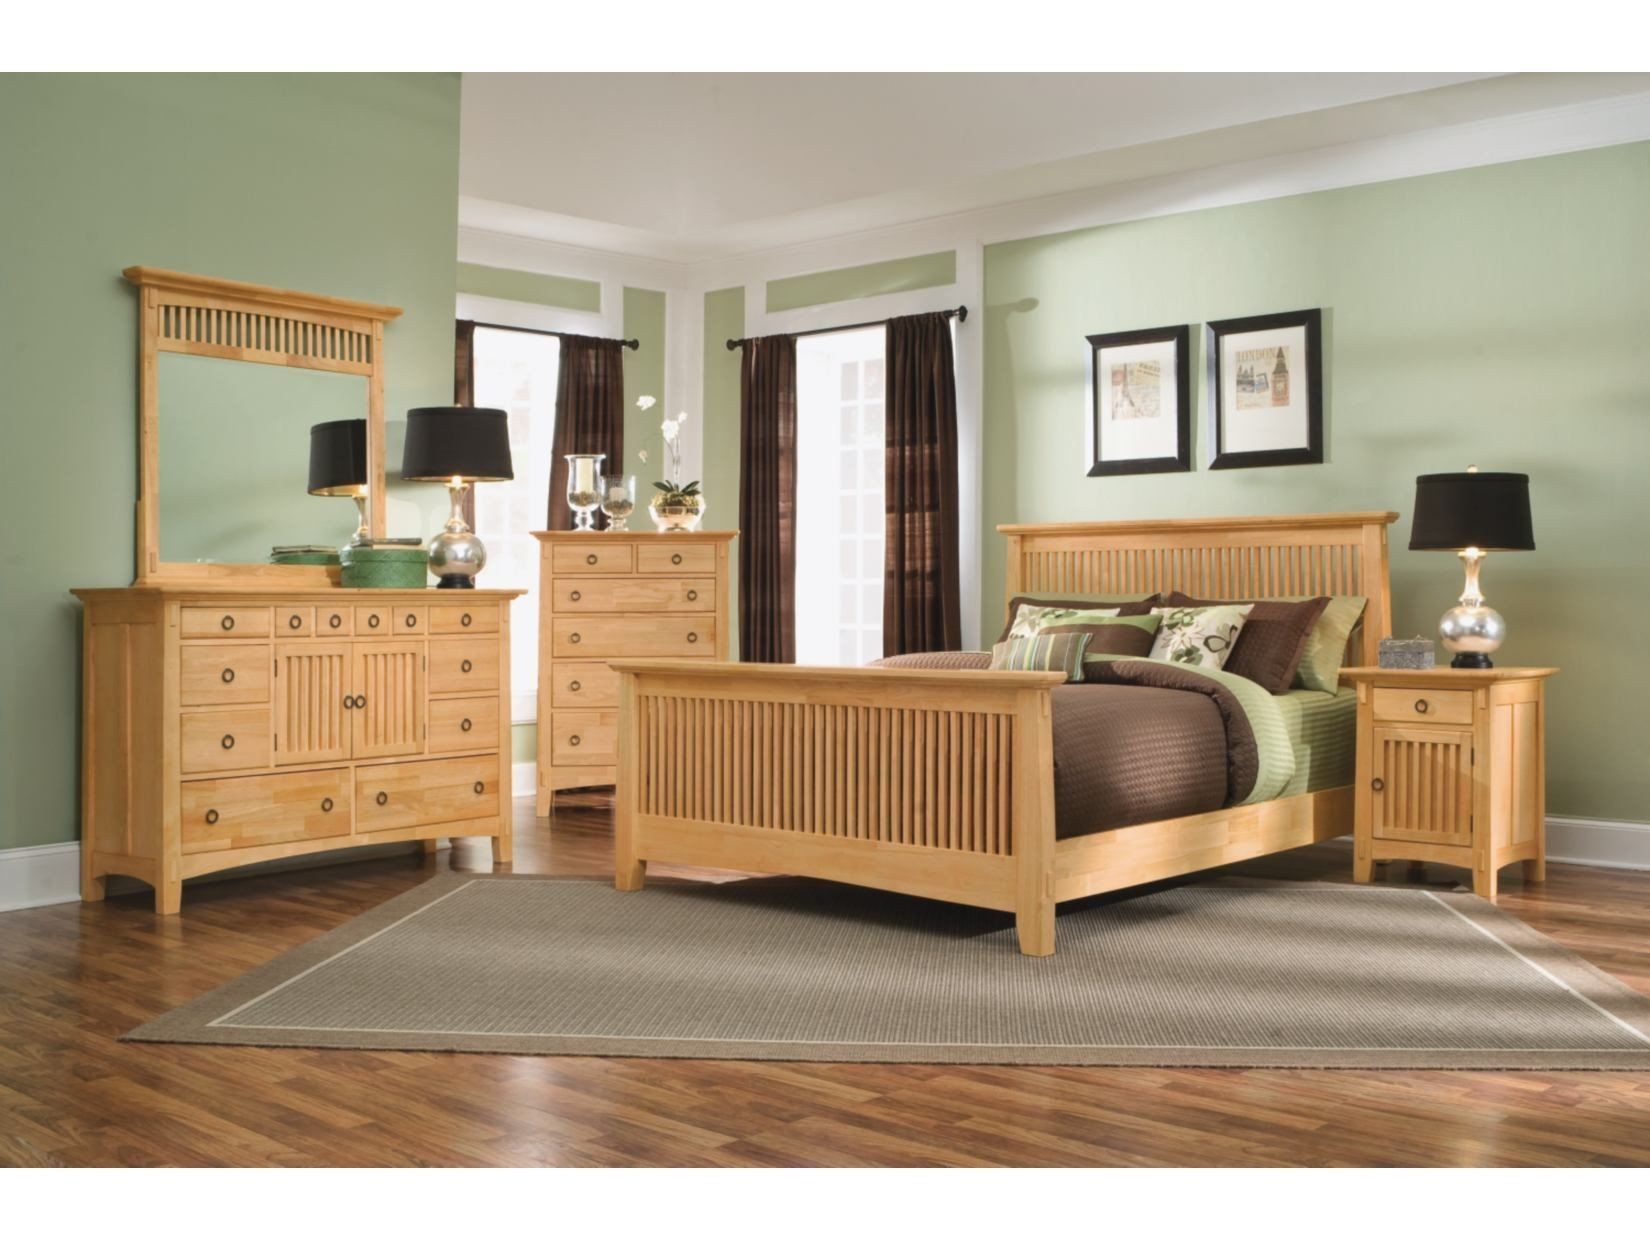 Value City Bedroom Set On Sale Lovely Arts & Crafts 5 Pc Bedroom Package American Signature